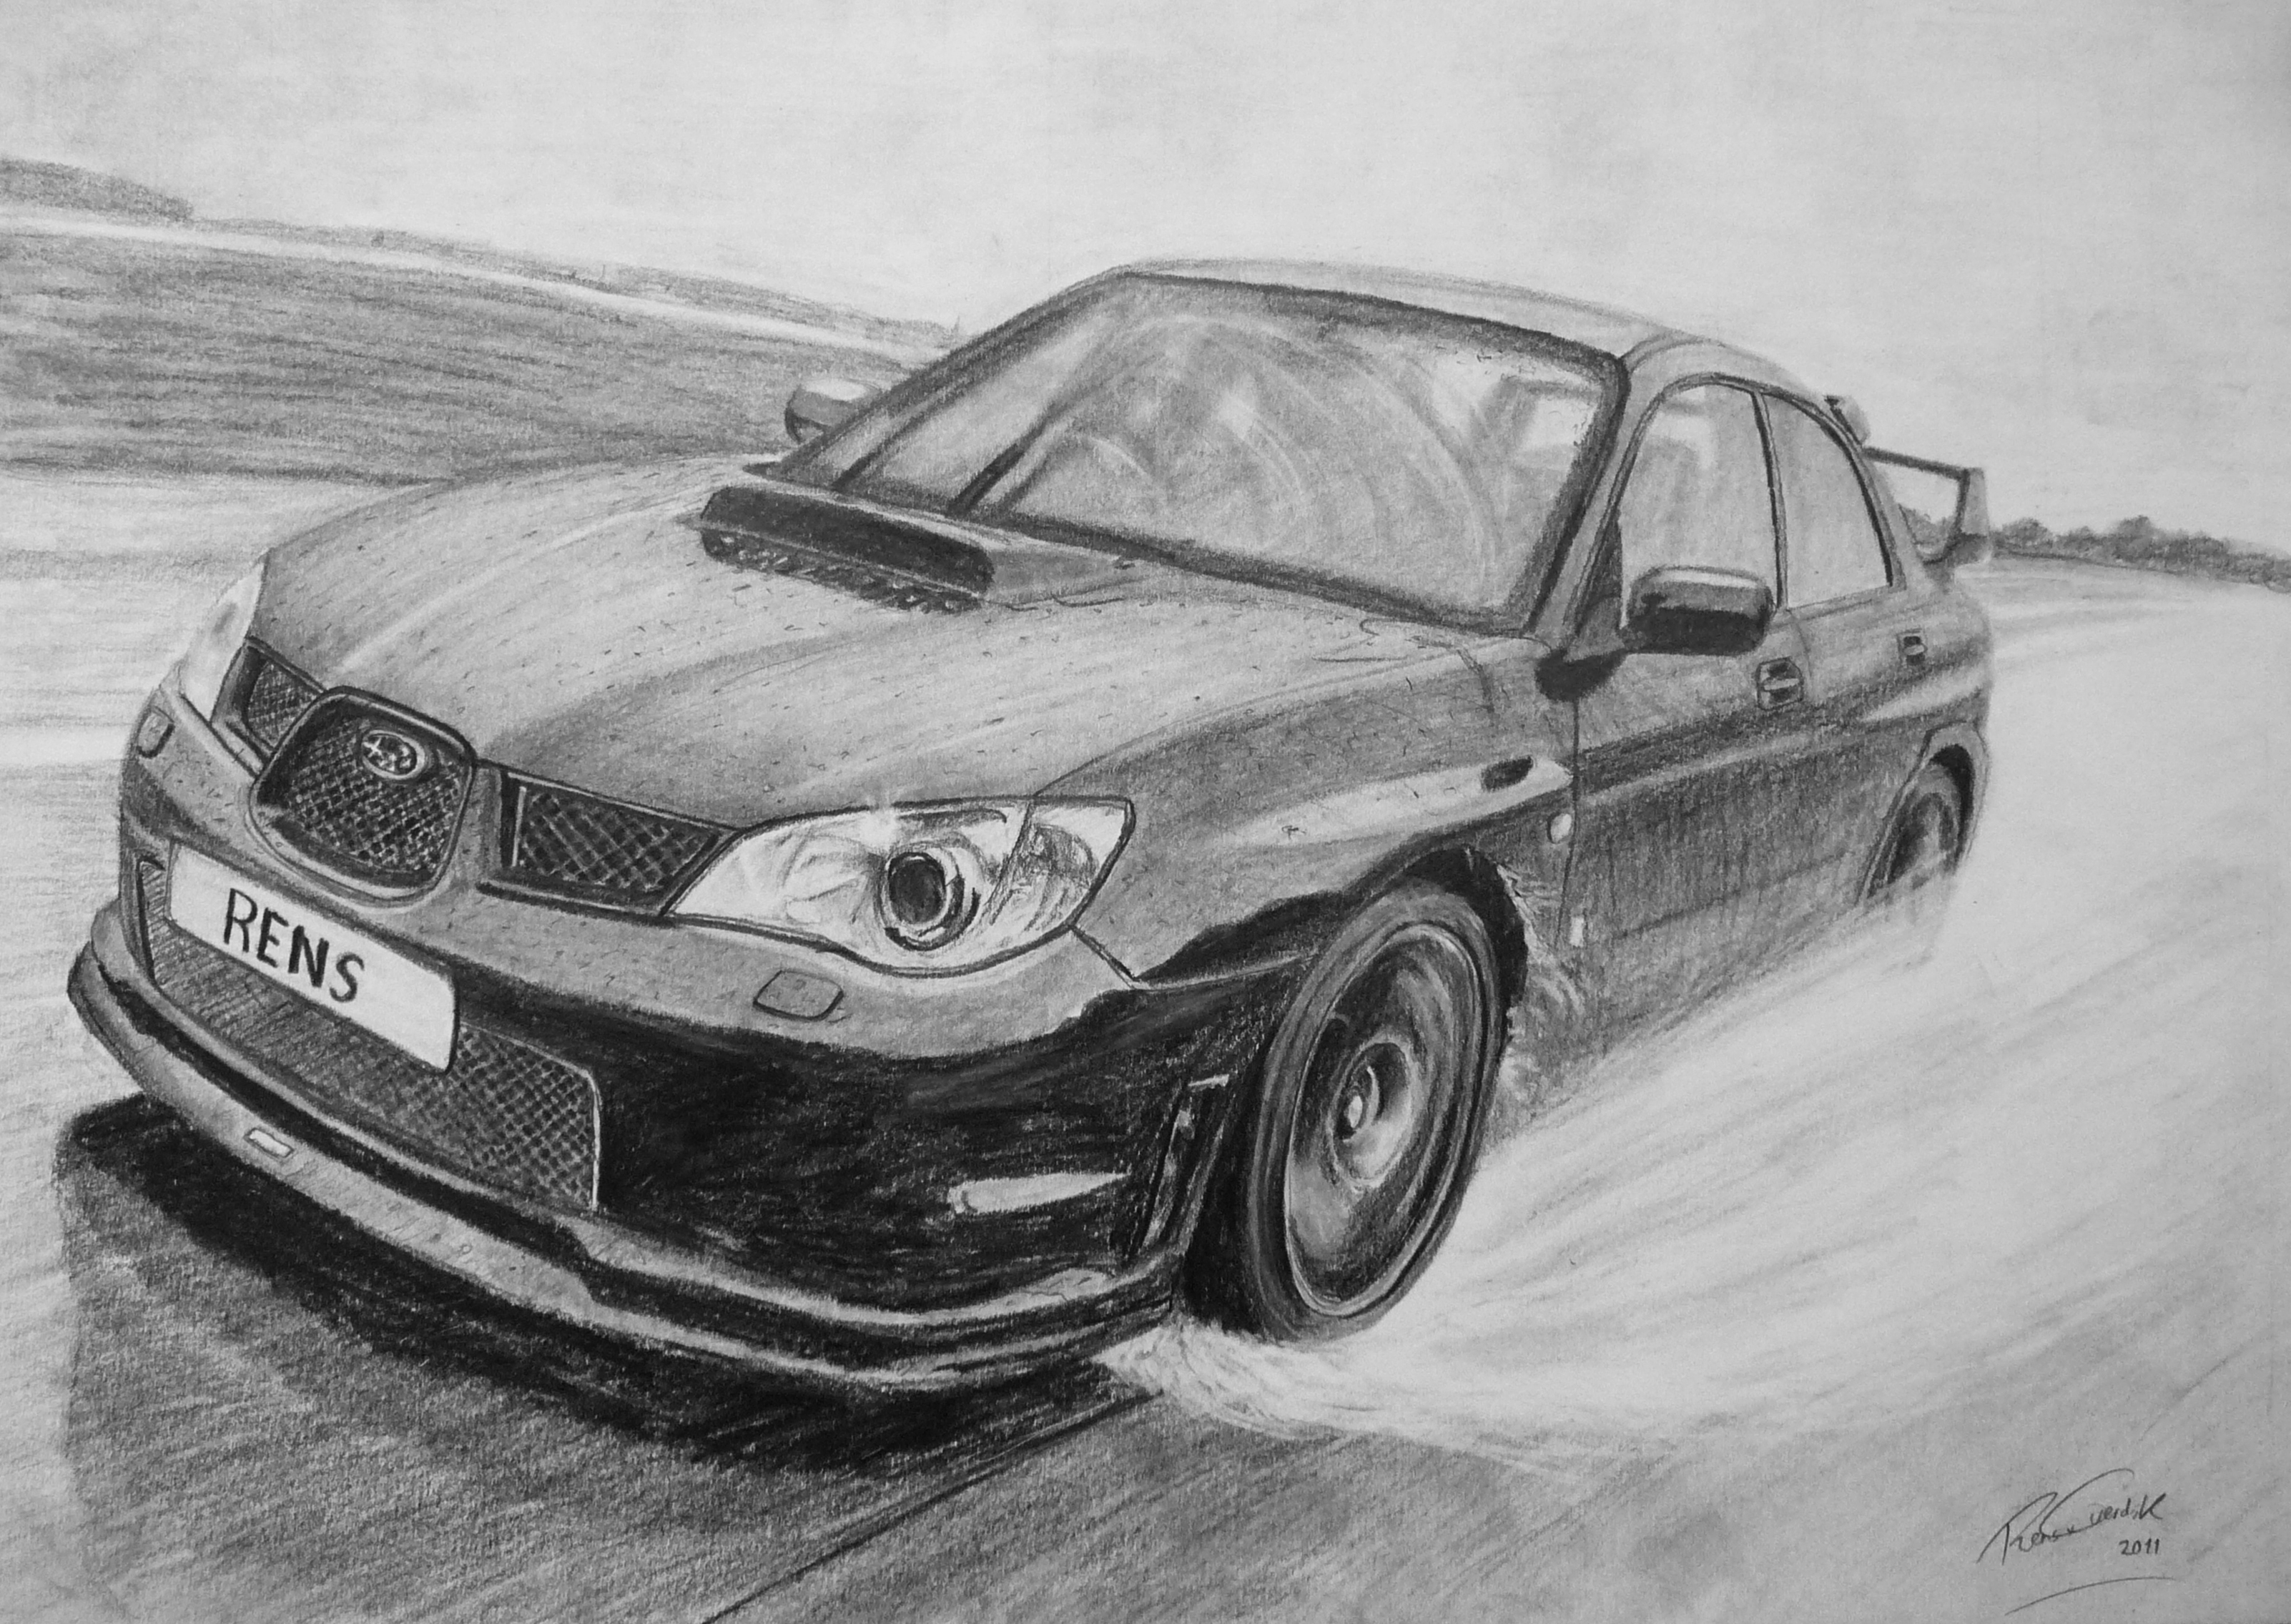 subaru wrx sti fast and furious with Subaru Impreza Pencil Drawing 197293119 on Top 10 Engine Bay Mods furthermore More New Fast 8 Cars Seen Filming In New York City also 2018 Subaru Brz Turbo Review And Price in addition Subaru Impreza Wrx Hatchback likewise Fast 8 Ice Cars.